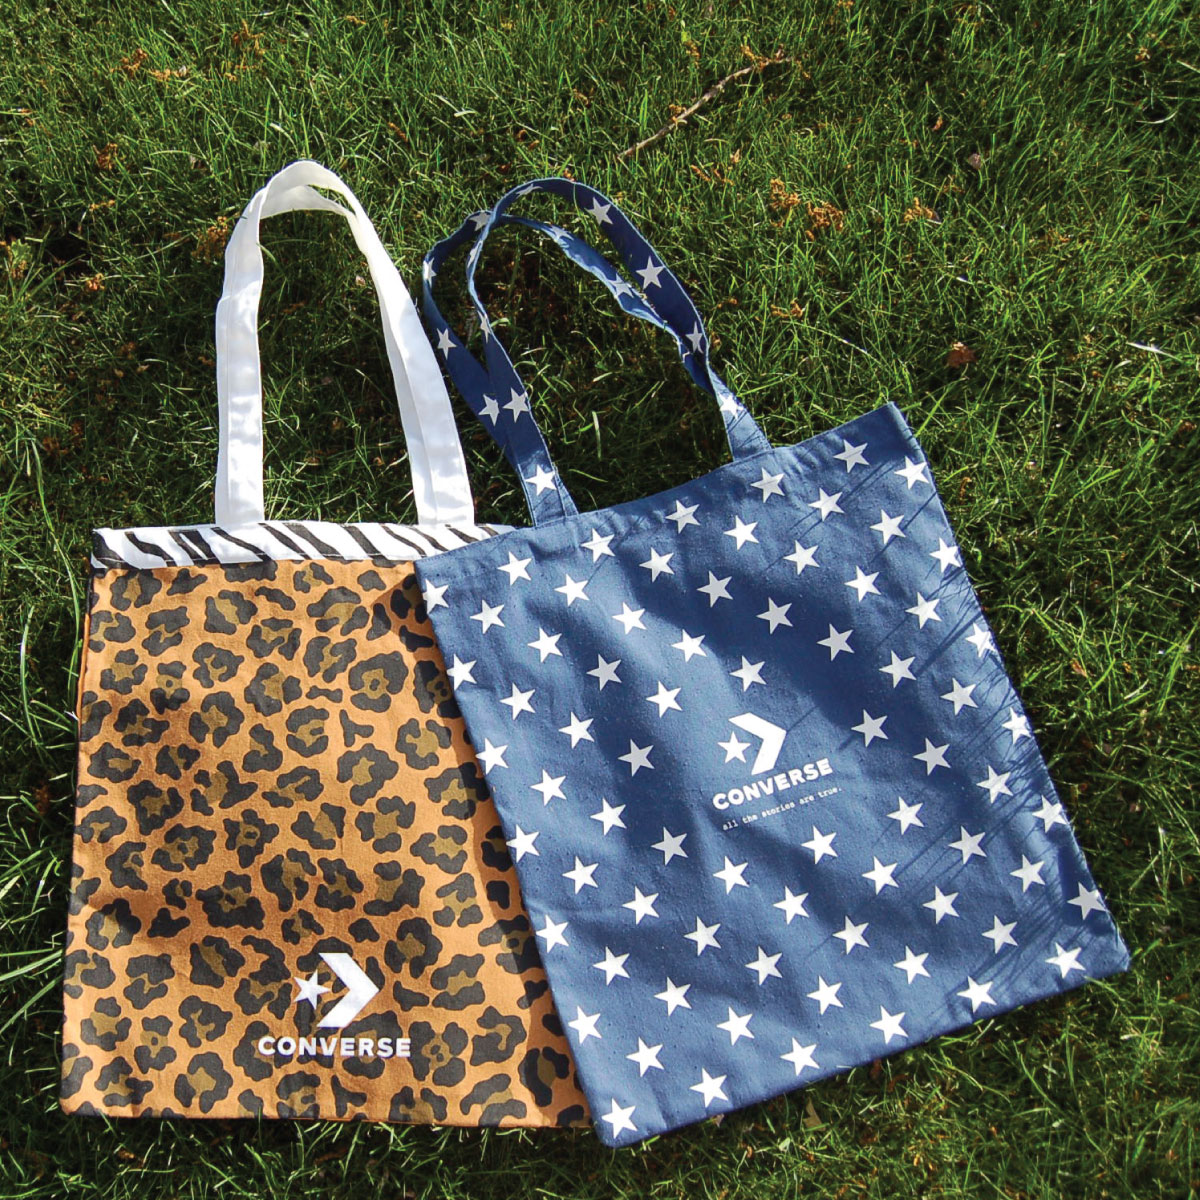 wholesale shopping bags